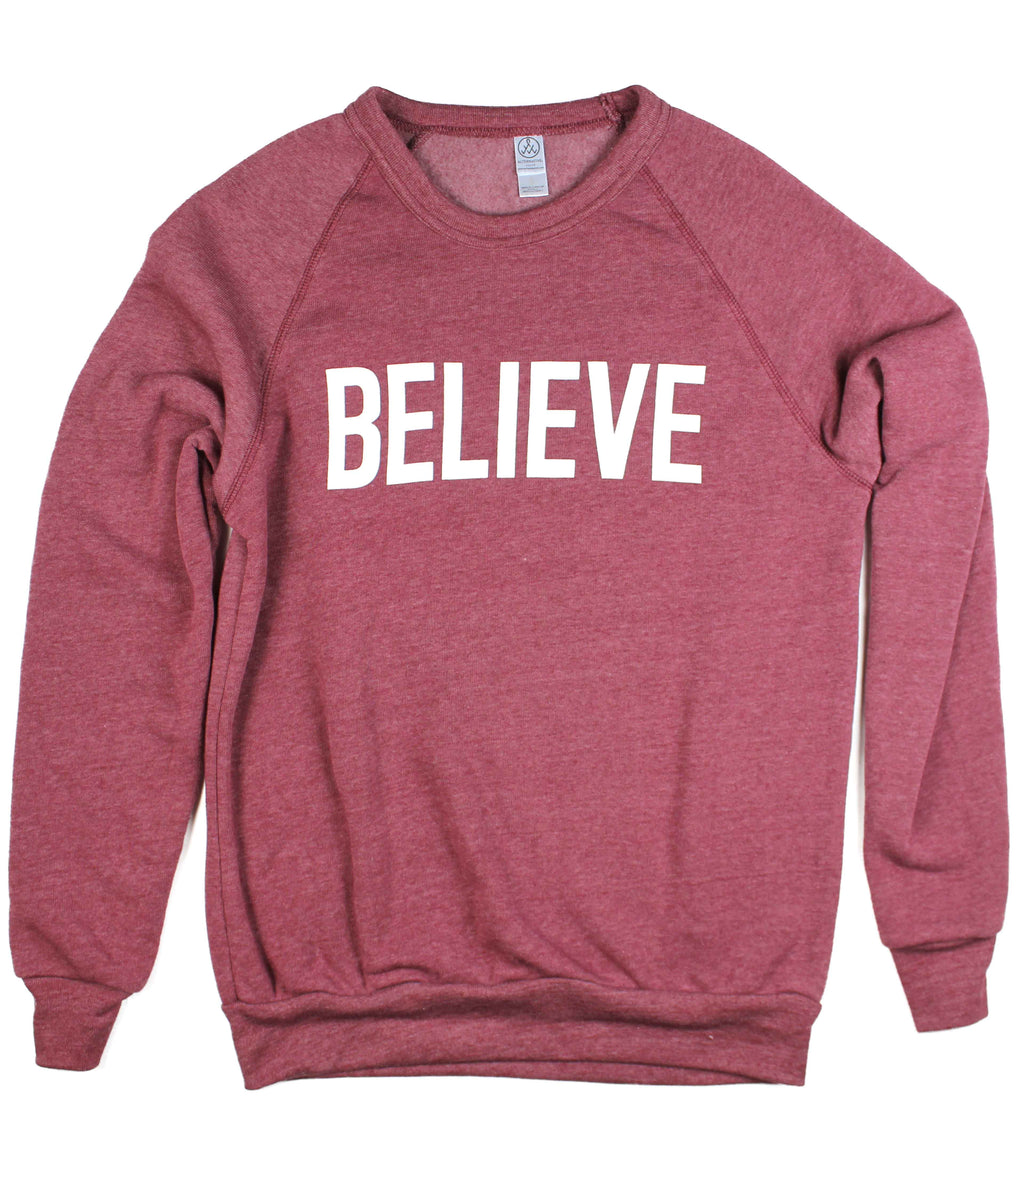 BELIEVE DUSTY RED CREWNECK SWEATSHIRT